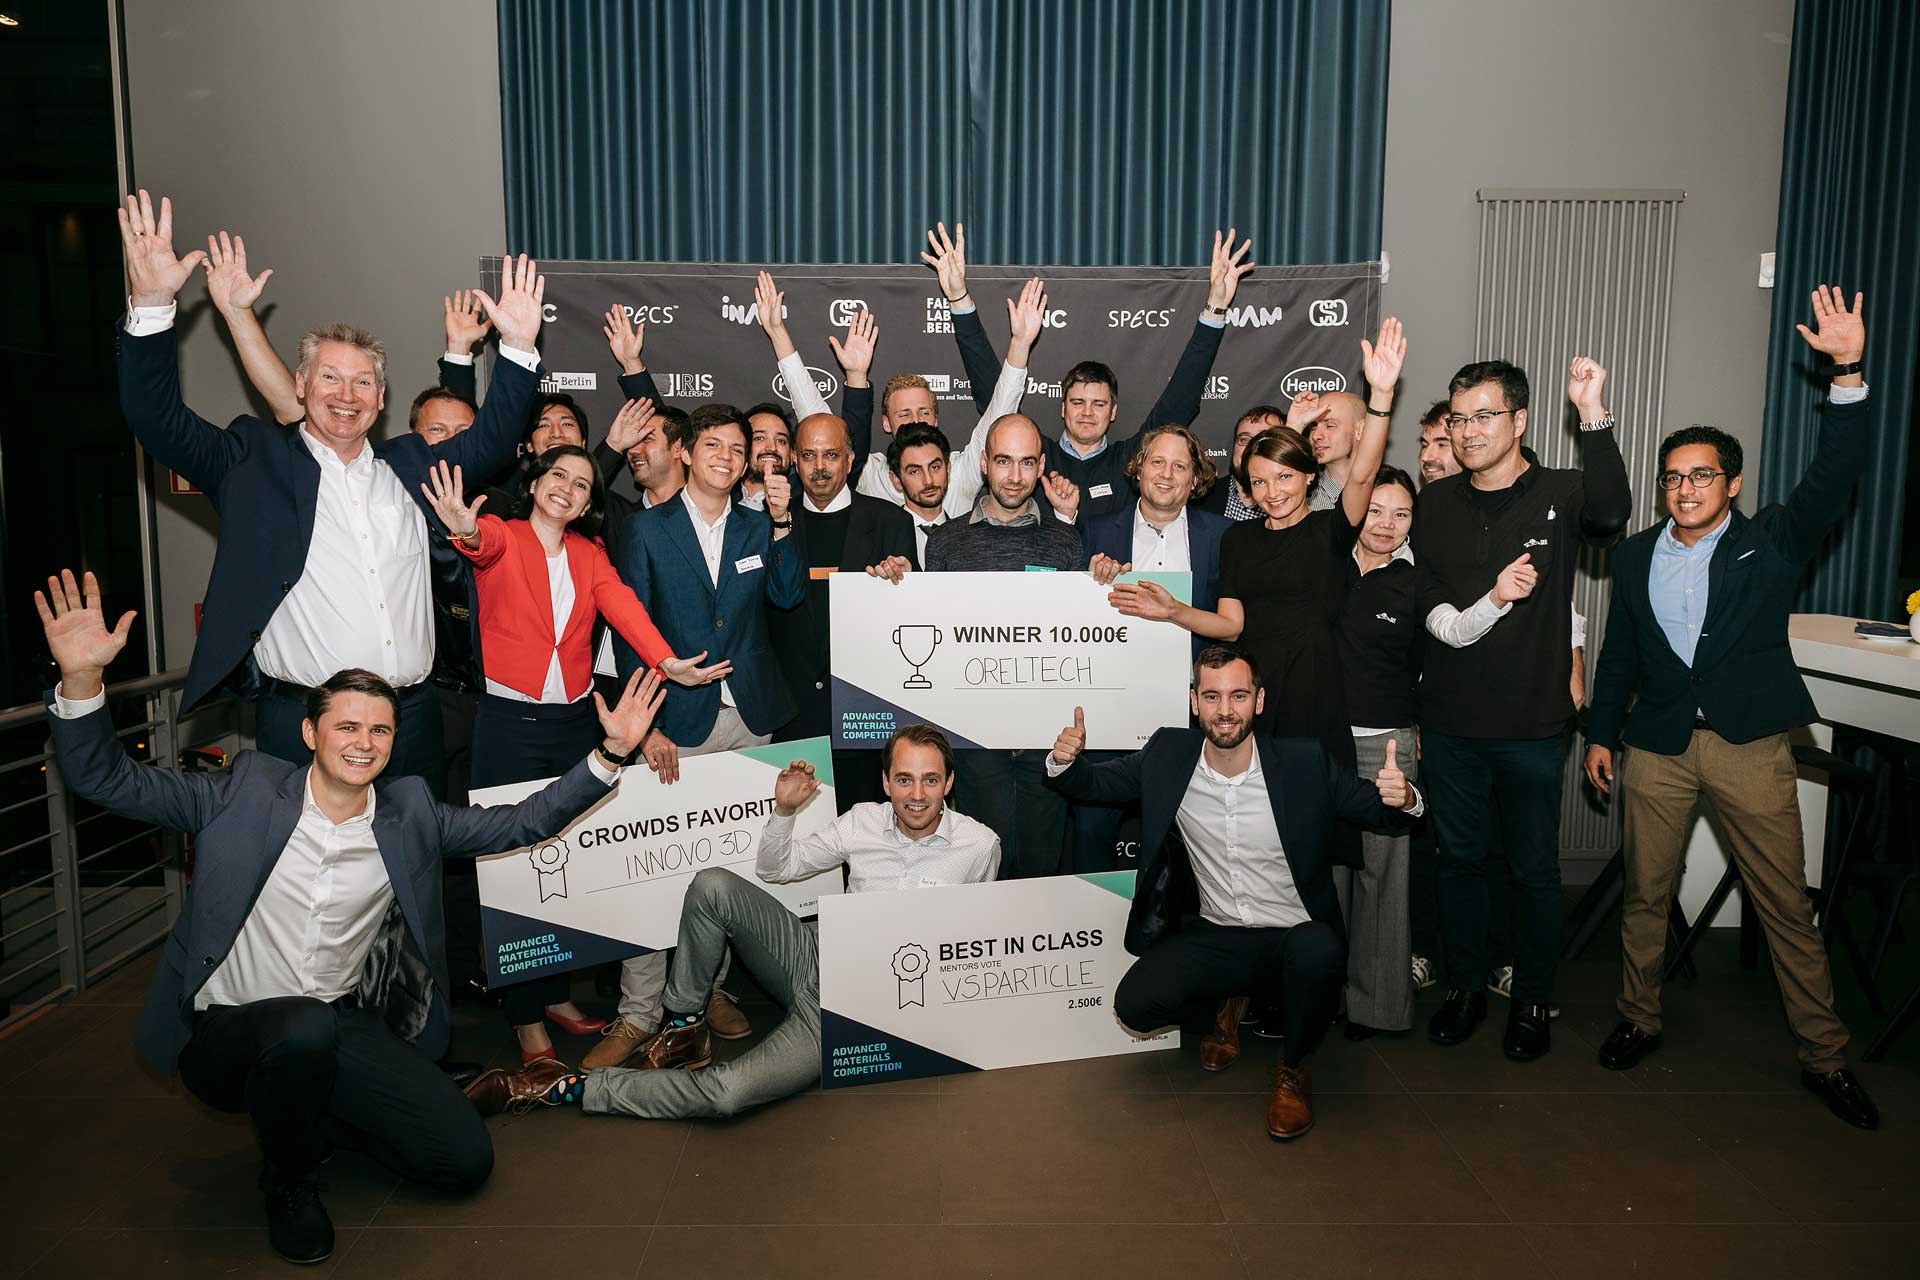 AdMaCom Participation - You will receive exclusive pre-, during and post-event access to our annual accelerator program: Advanced Materials Competition (AdMaCom).